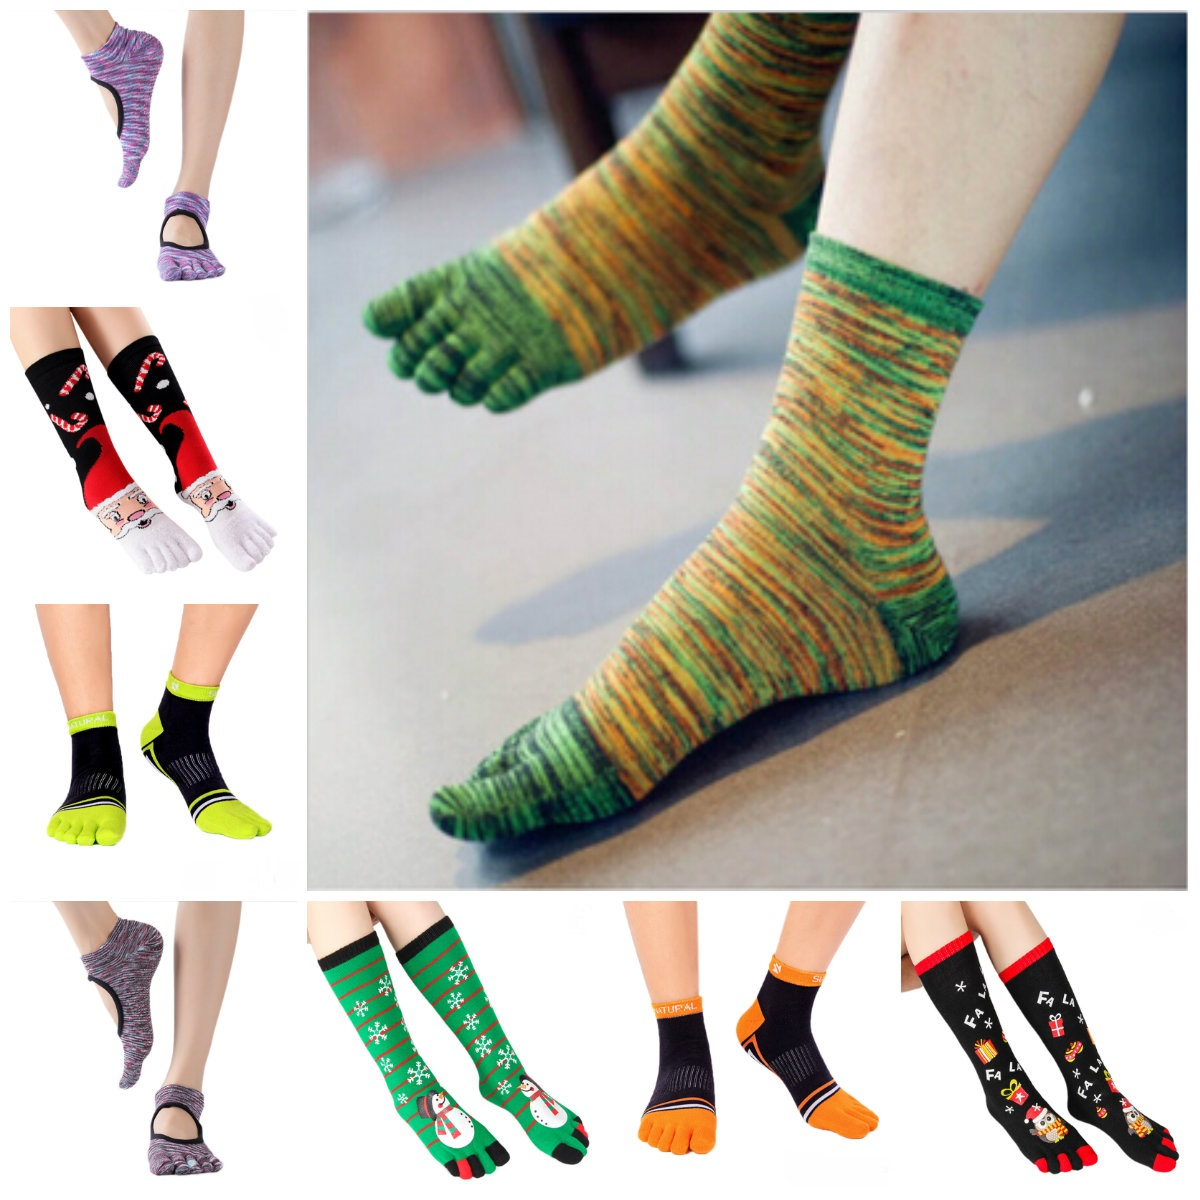 Women High Ankle Cotton Crew Socks Happy New Year Image Casual Sport Stocking